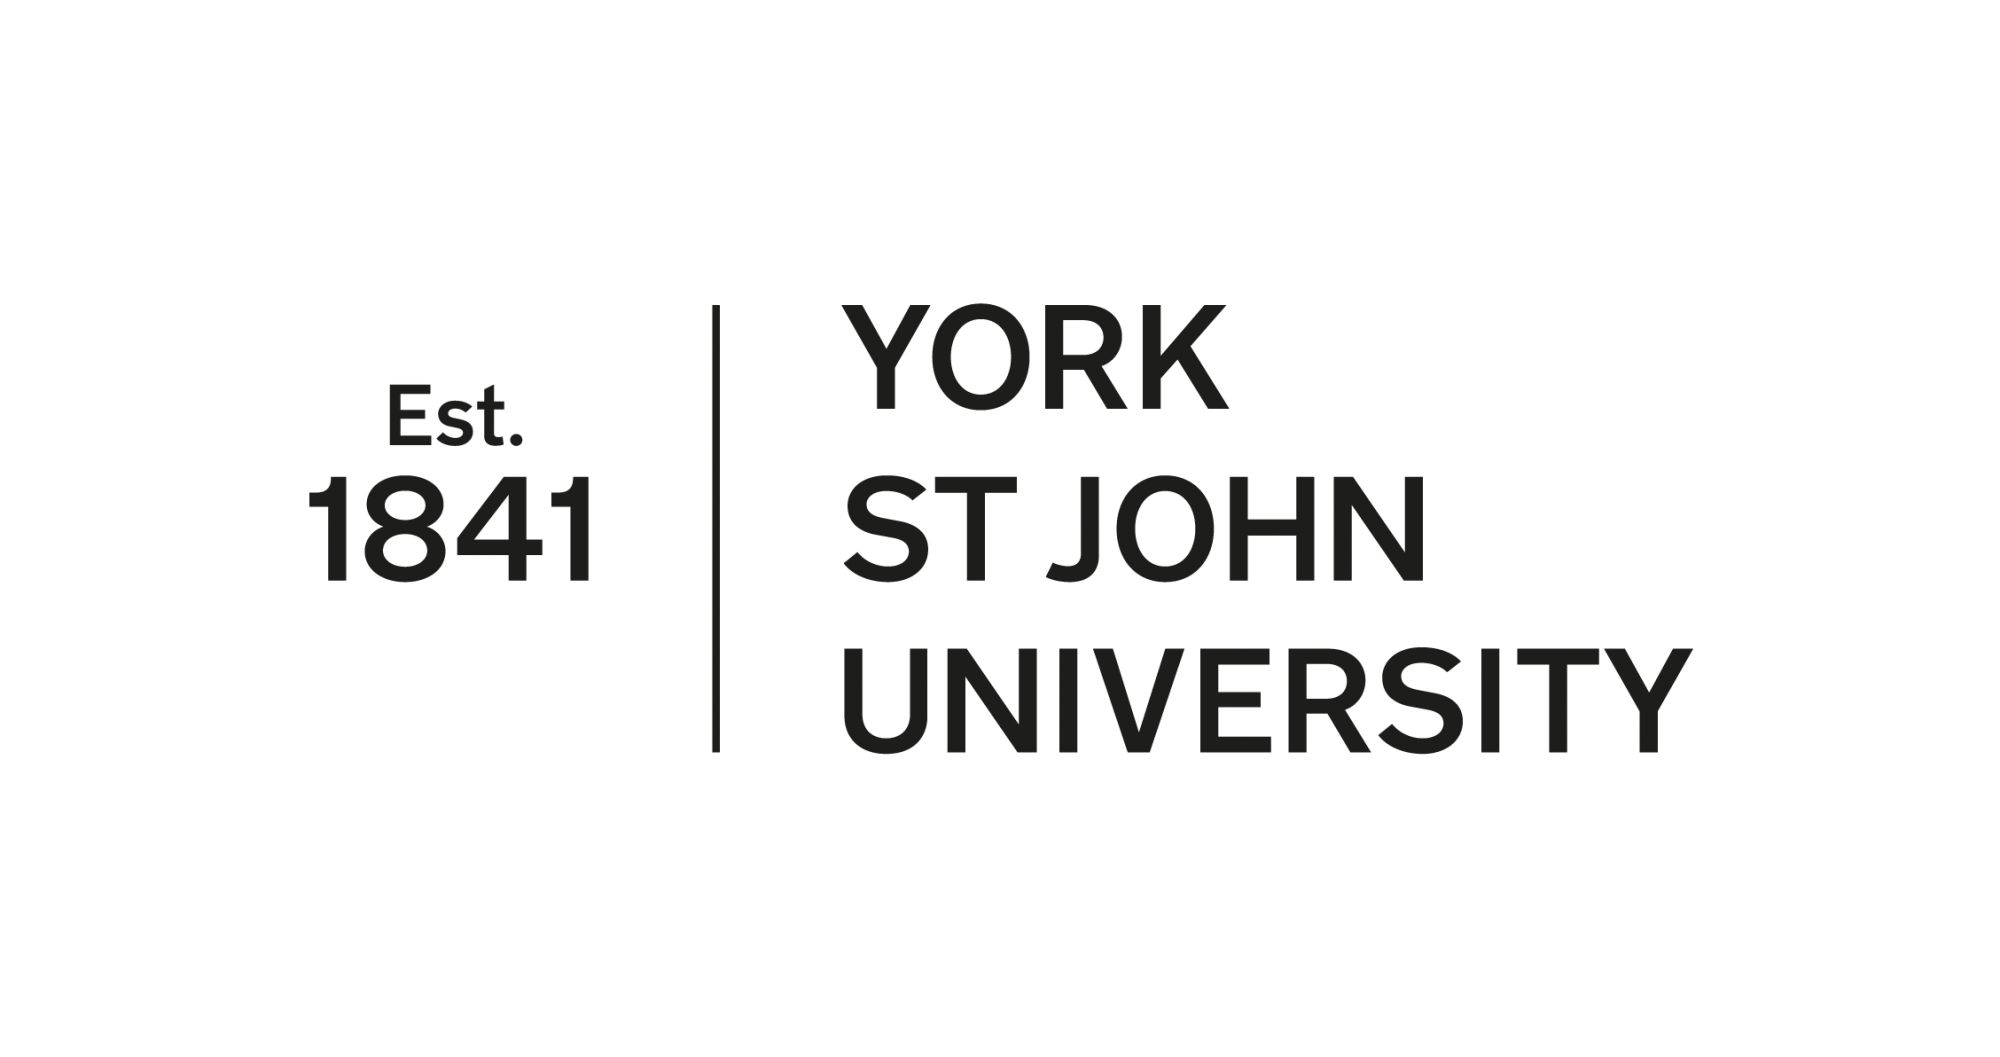 Symposia Series — York Mediale